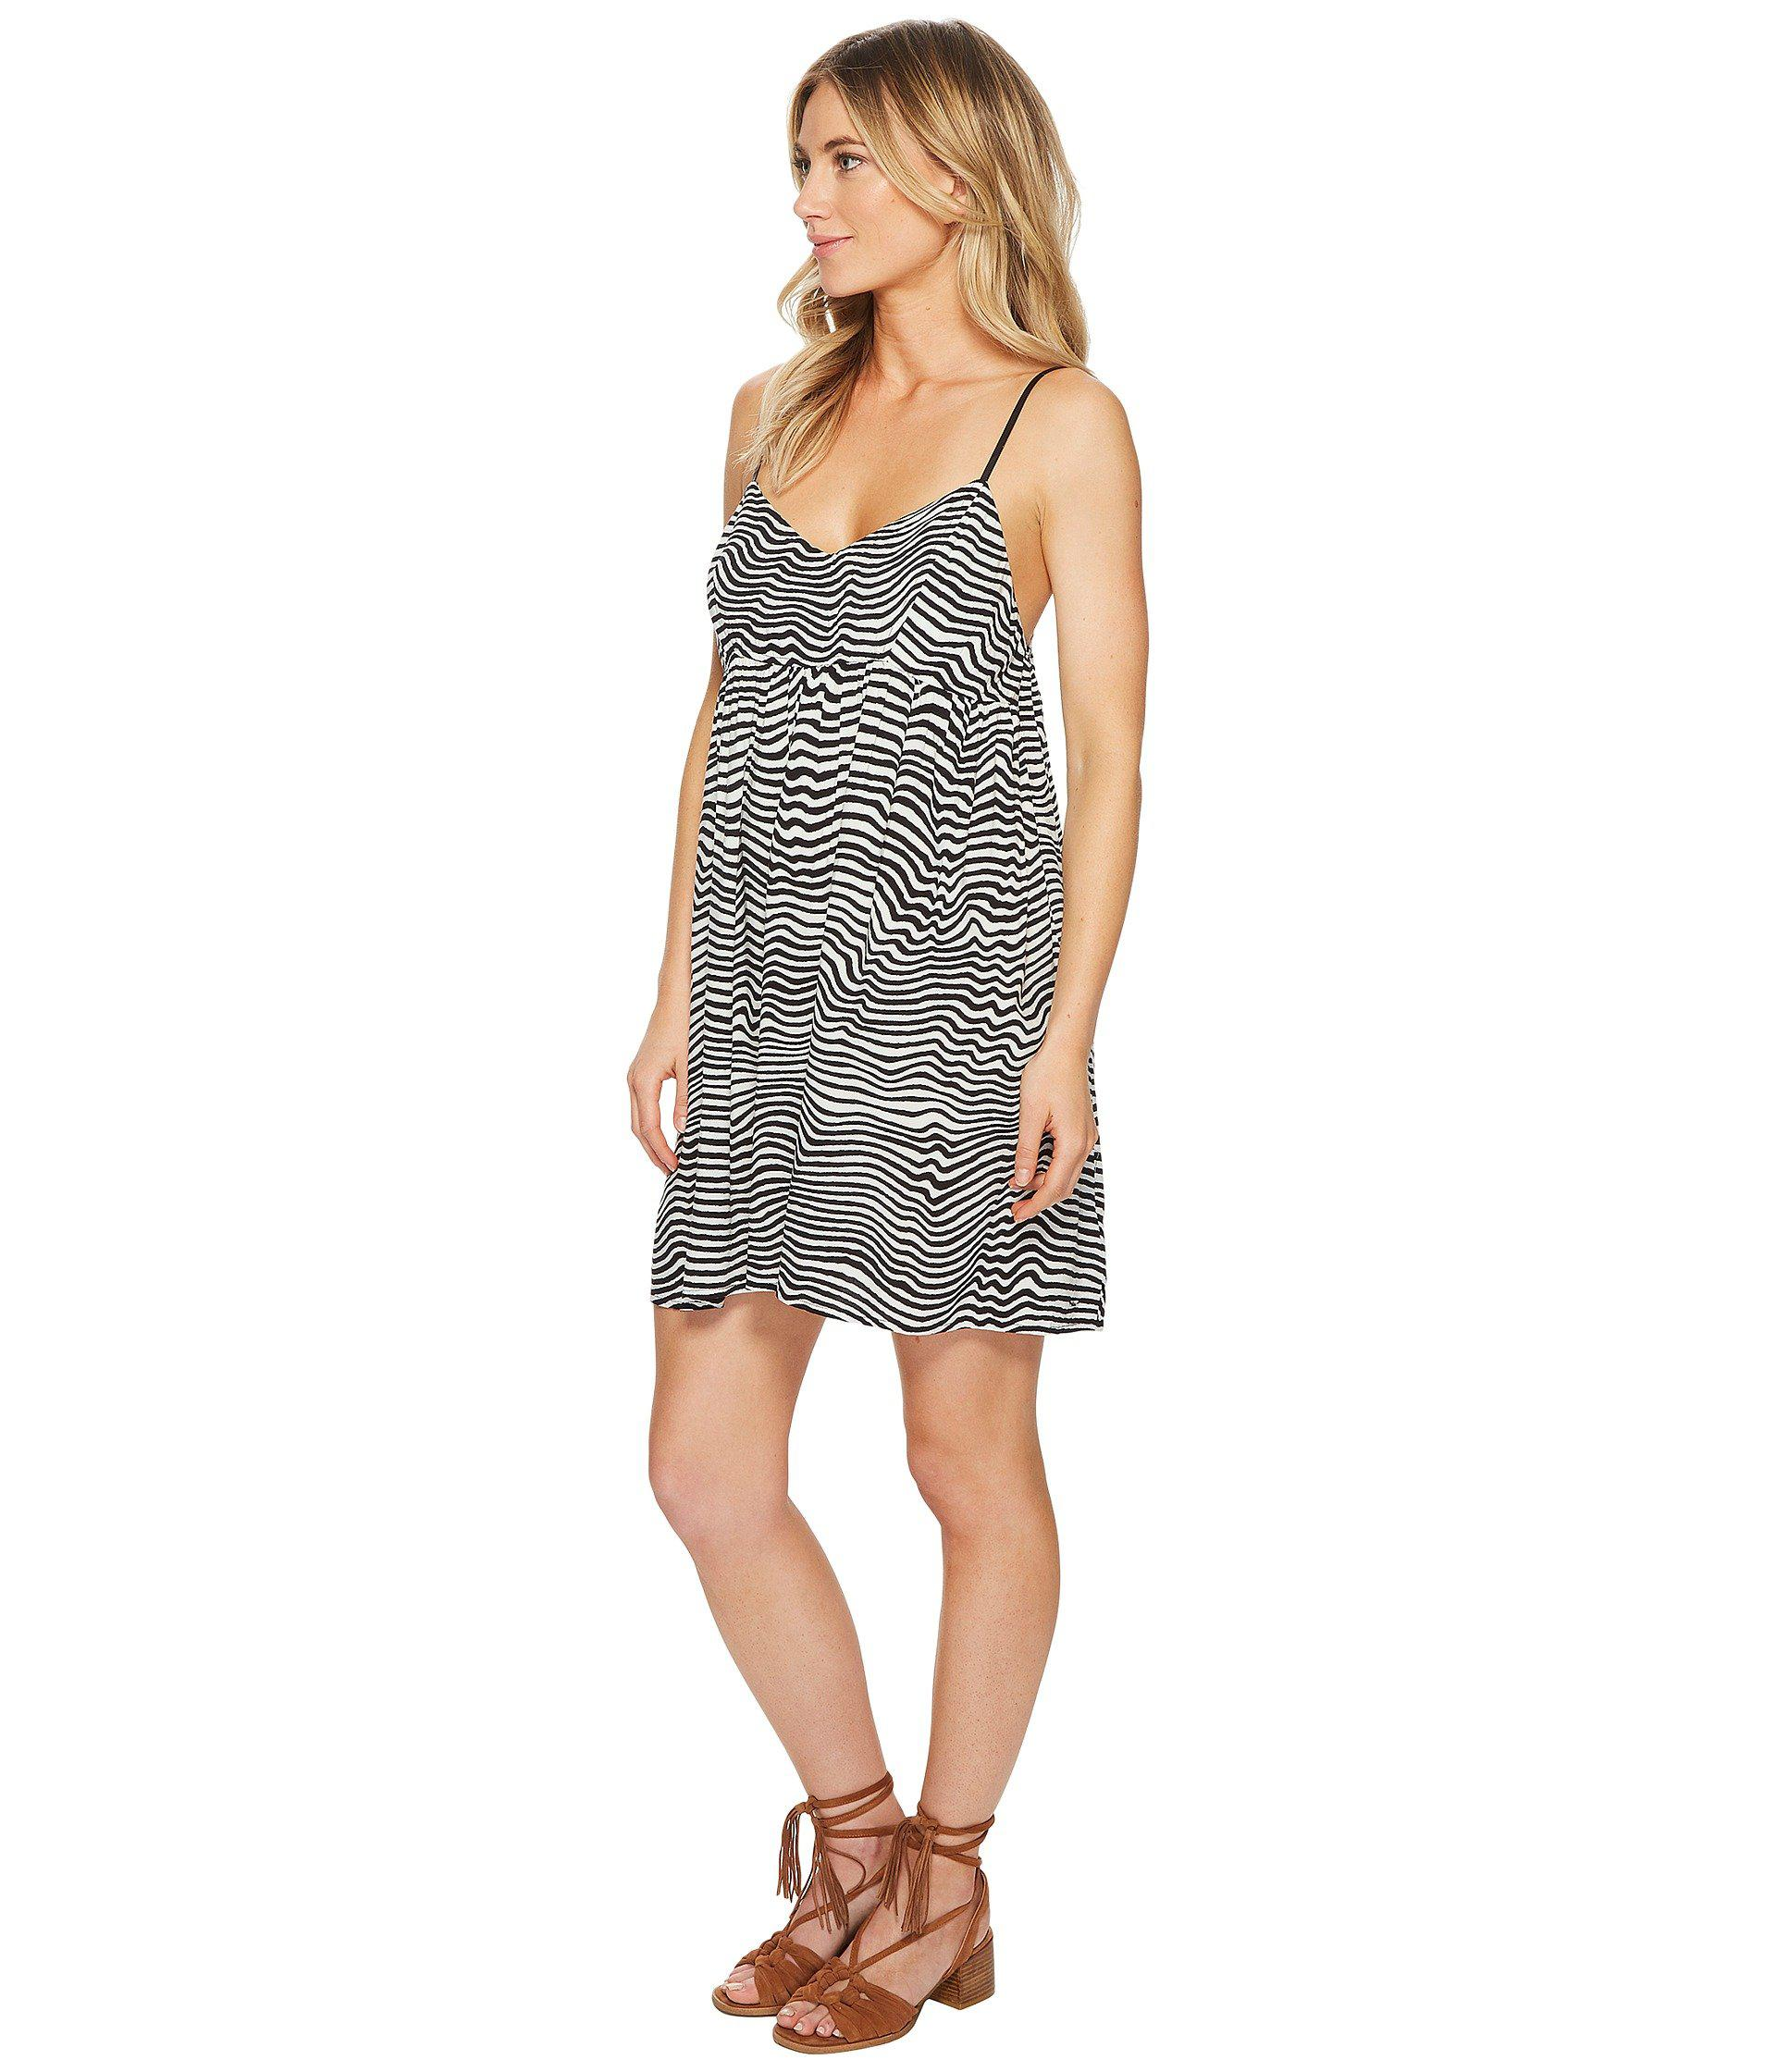 7874b63aee3 Lyst - Volcom Thx Its A New Dress in Black - Save 51%